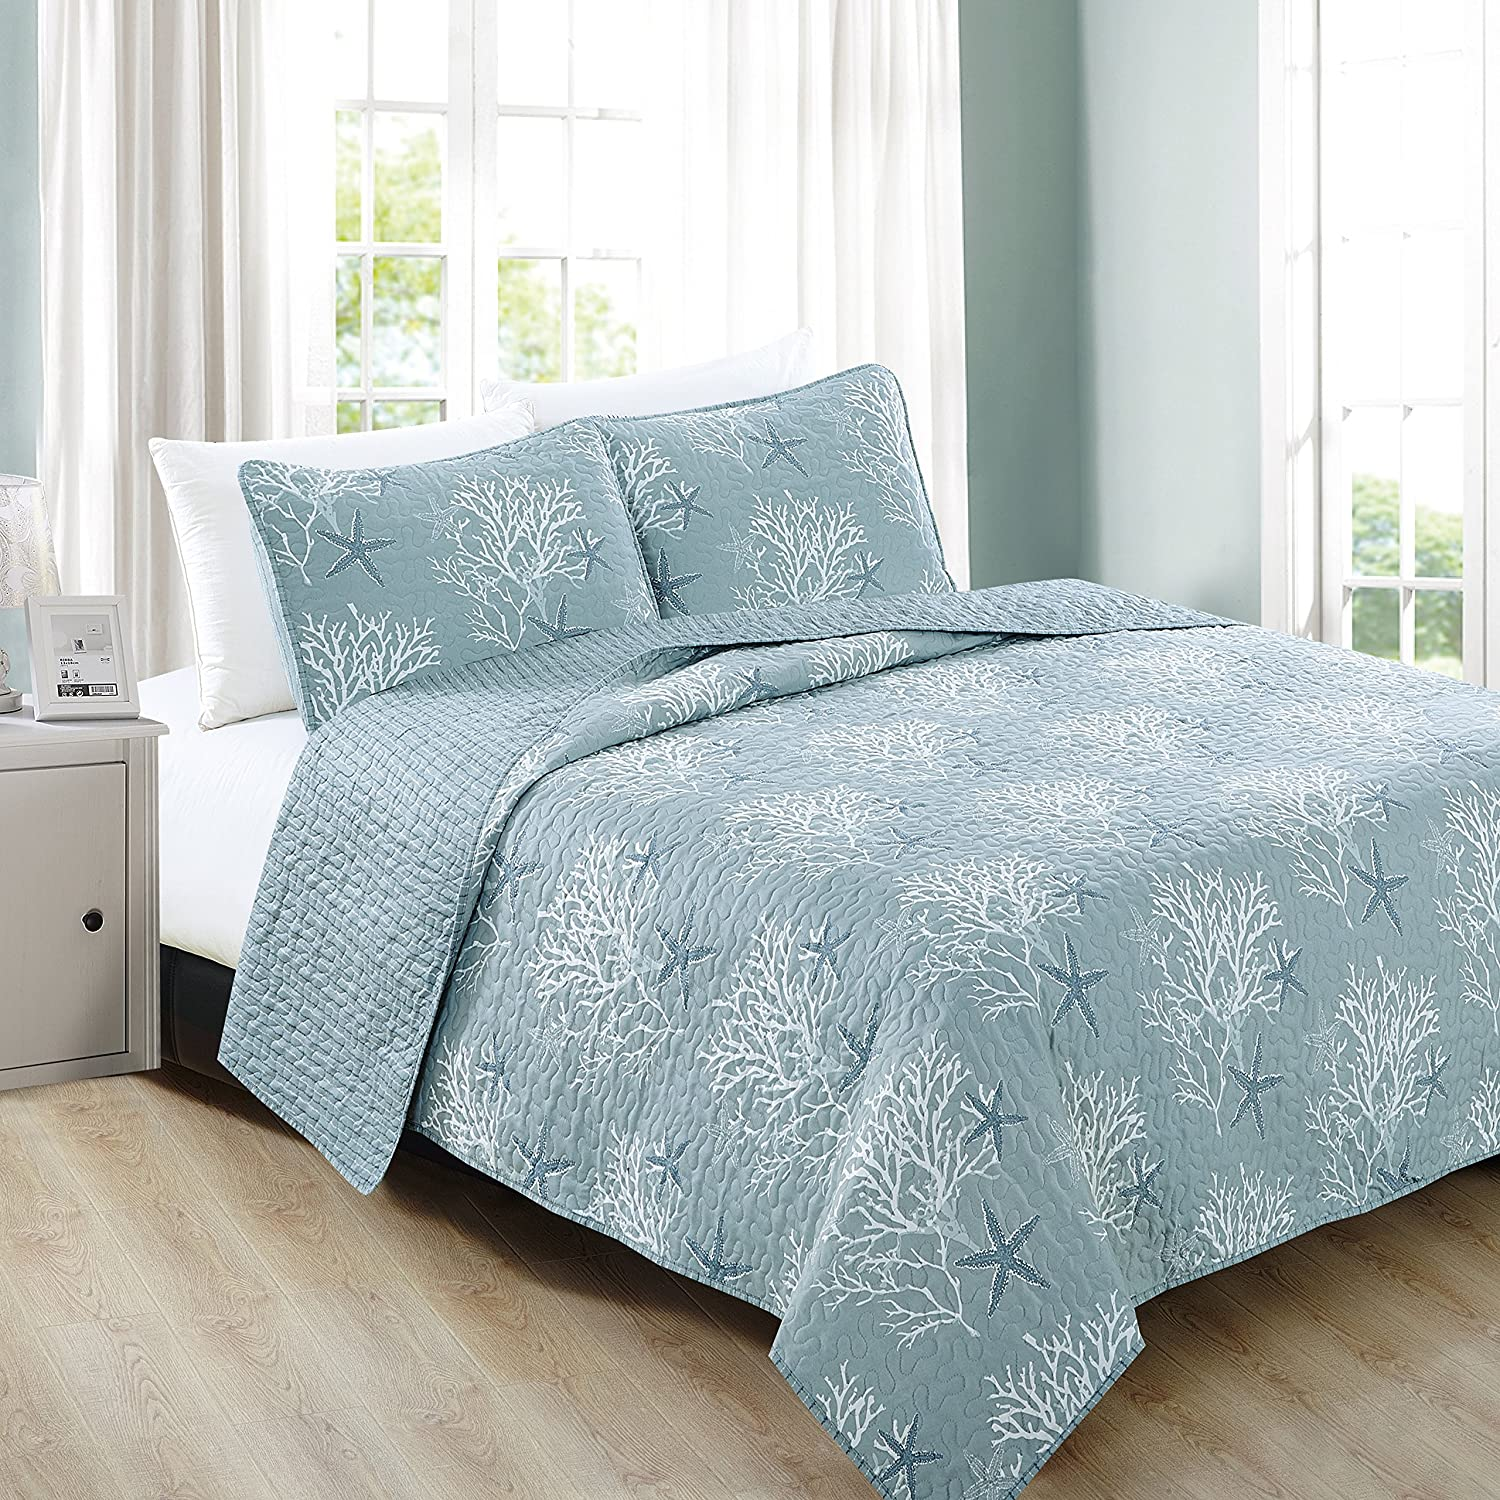 3-Piece Quilt Set with Shams.